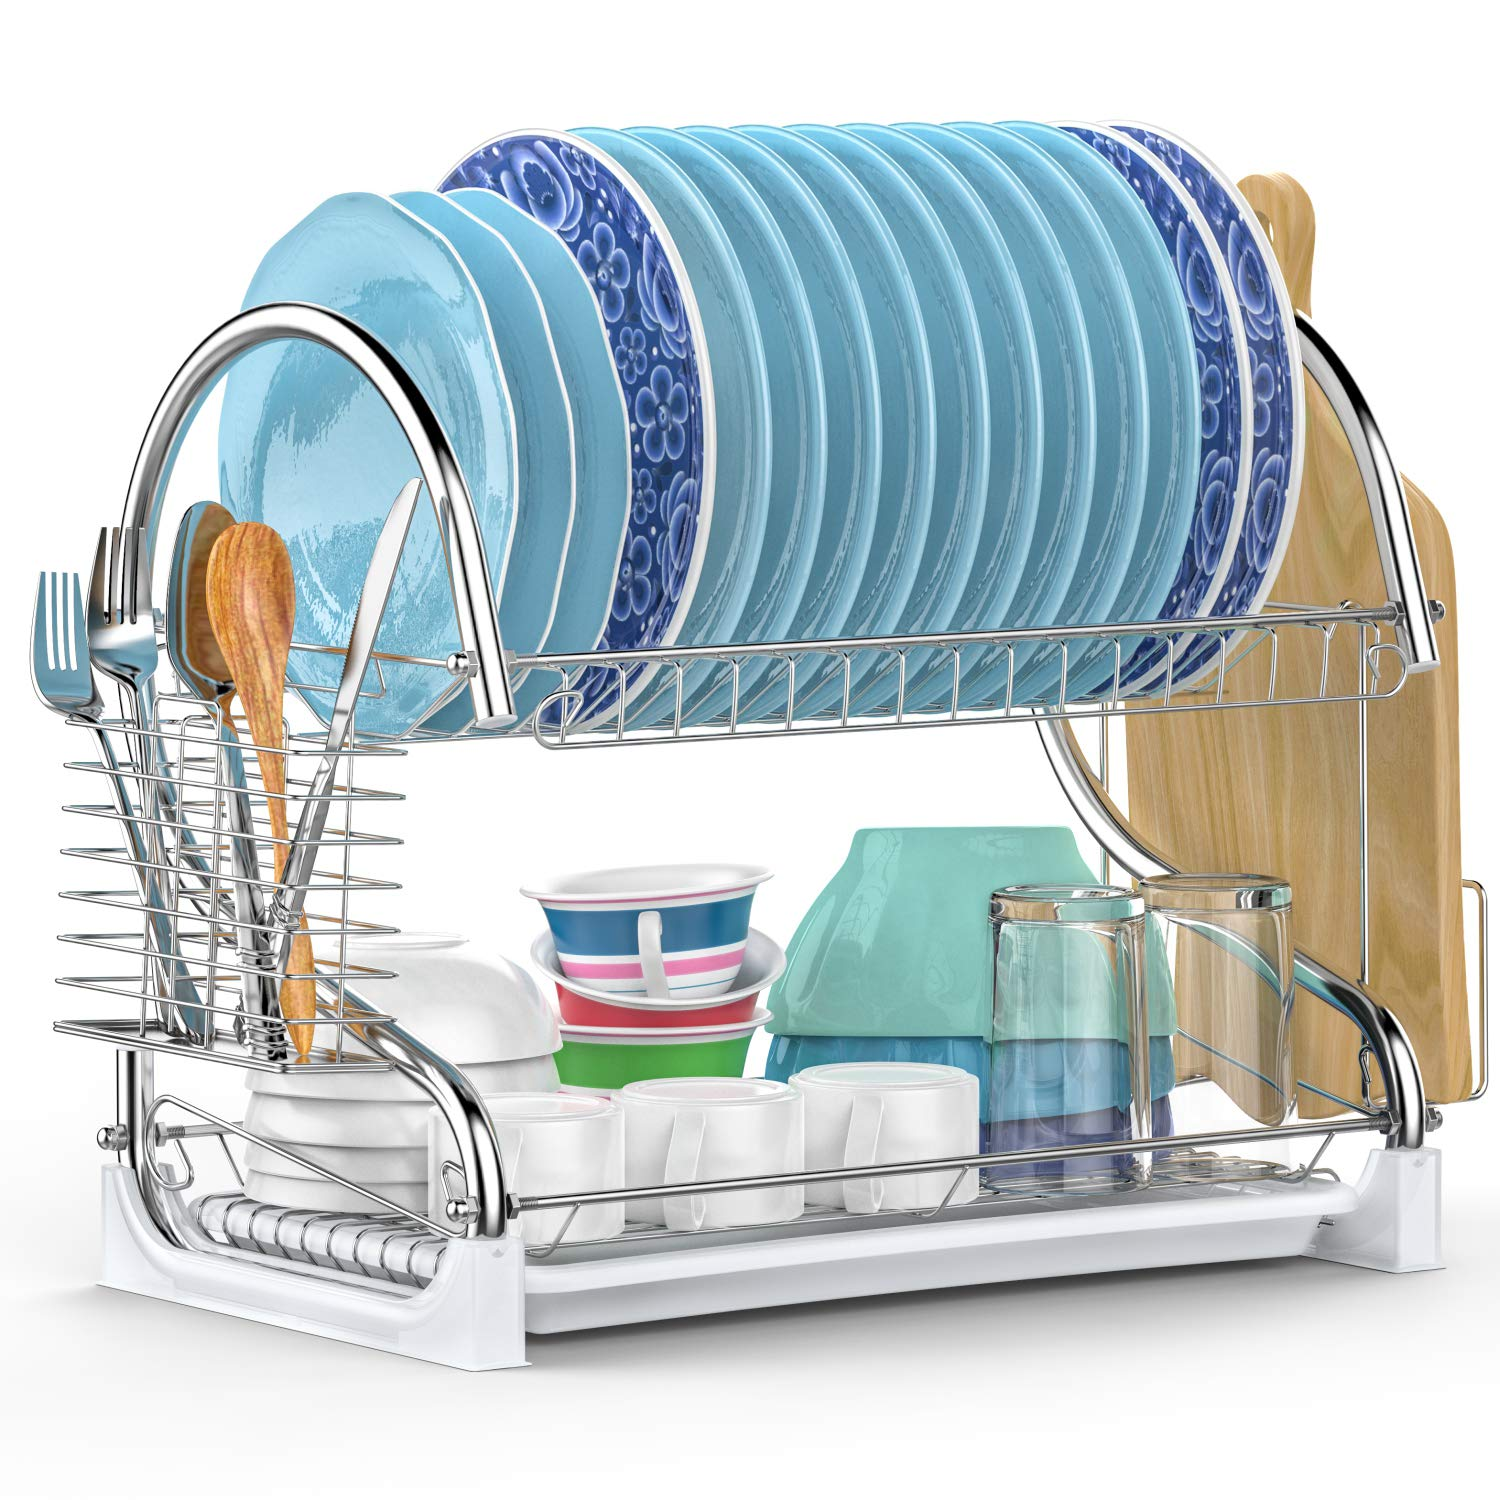 Dish Drying Rack, iSPECLE Upgrade 2 Tier Dish Rack with Utensil Holder, Cutting Board Holder and Kitchen Dish Drainer for Kitchen Counter Top, Plated Chrome Dish Dryer Rack Silver 17.0x9.7x14.6inch